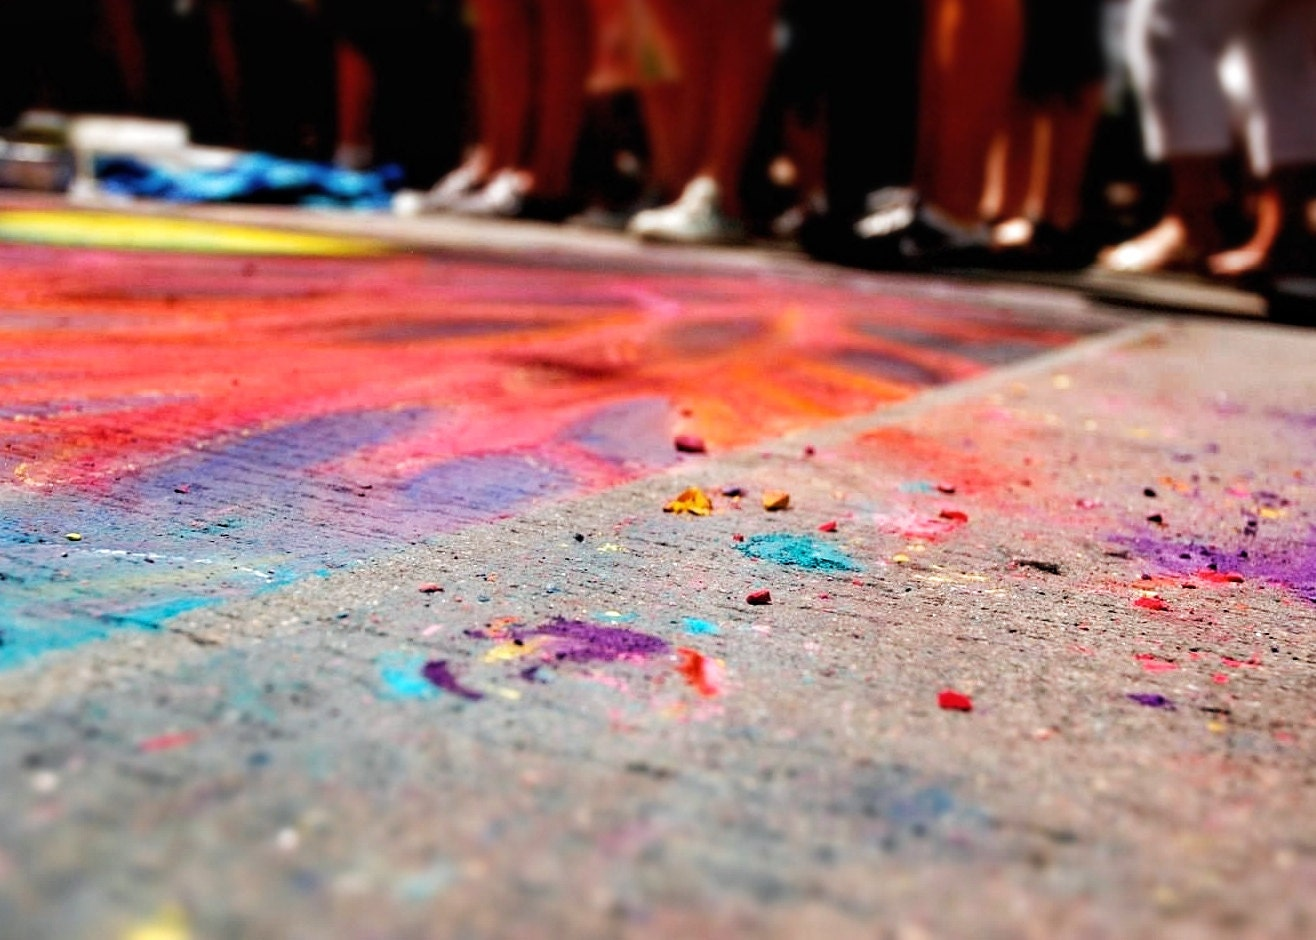 Chalk, 11x14 inch fine art print ready to frame, Denver Chalk Art Festival 2011 - PollenPictures